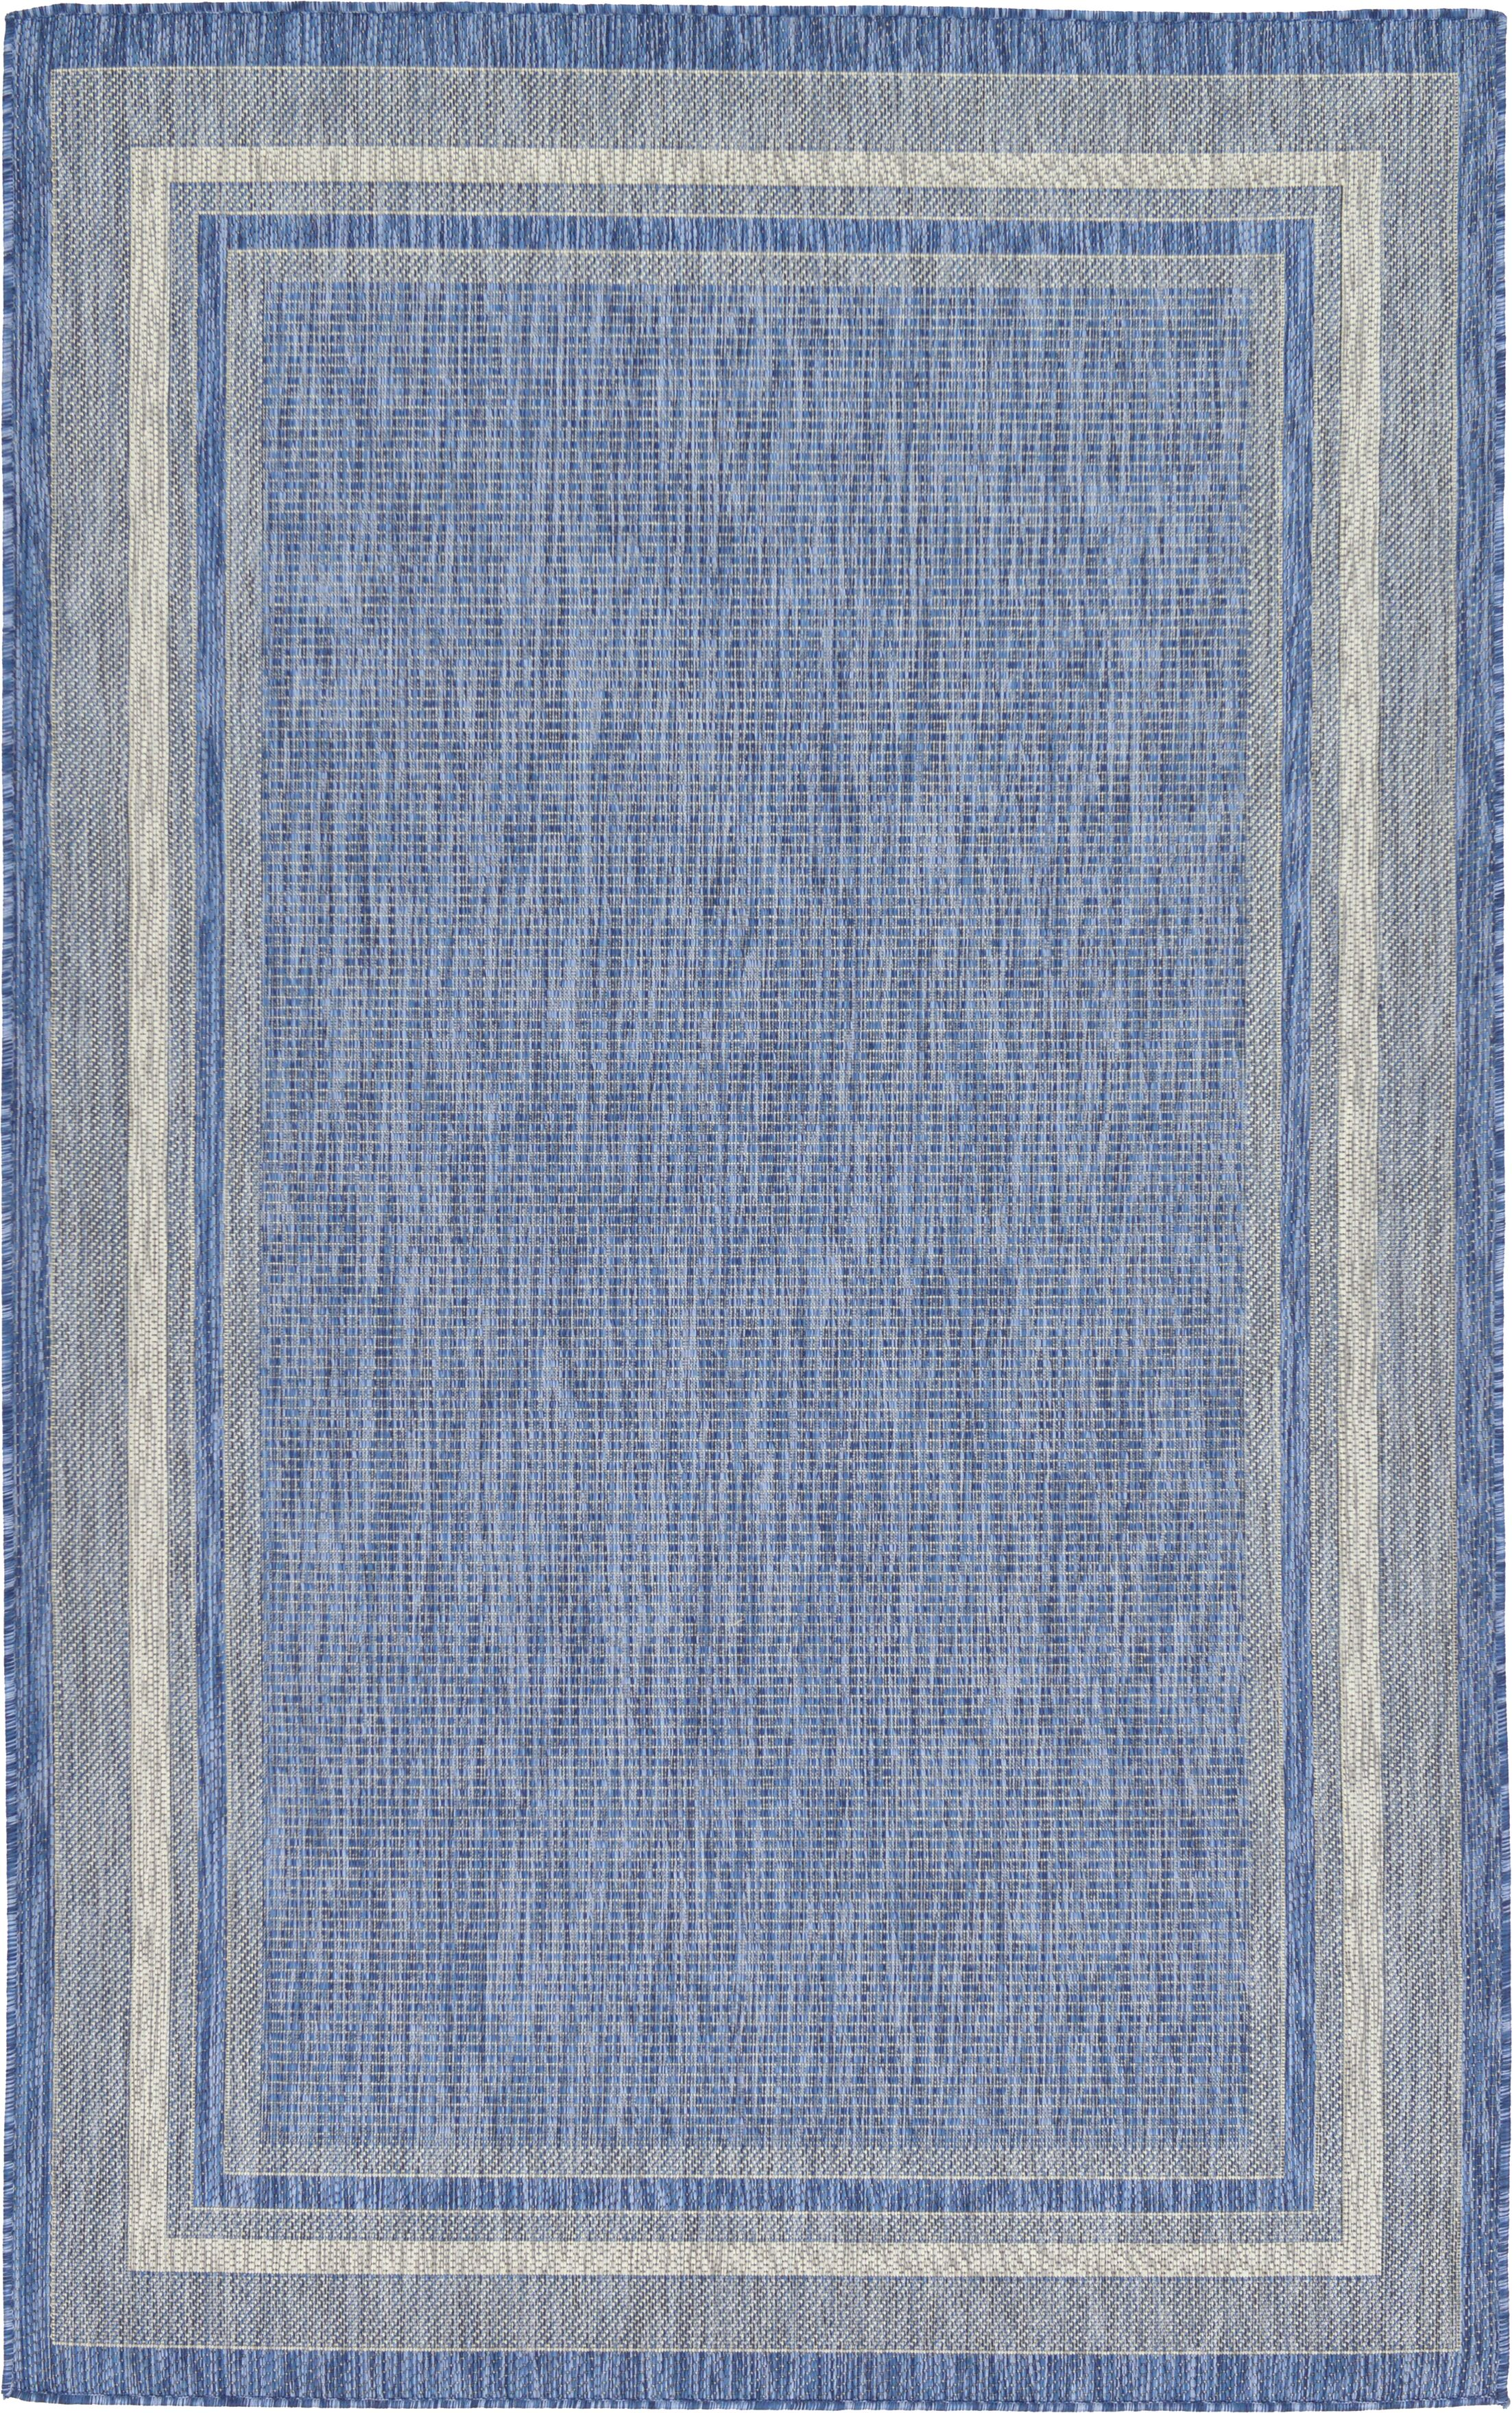 Roellig Blue Outdoor Area Rug Rug Size: Rectangle 5' x 8'